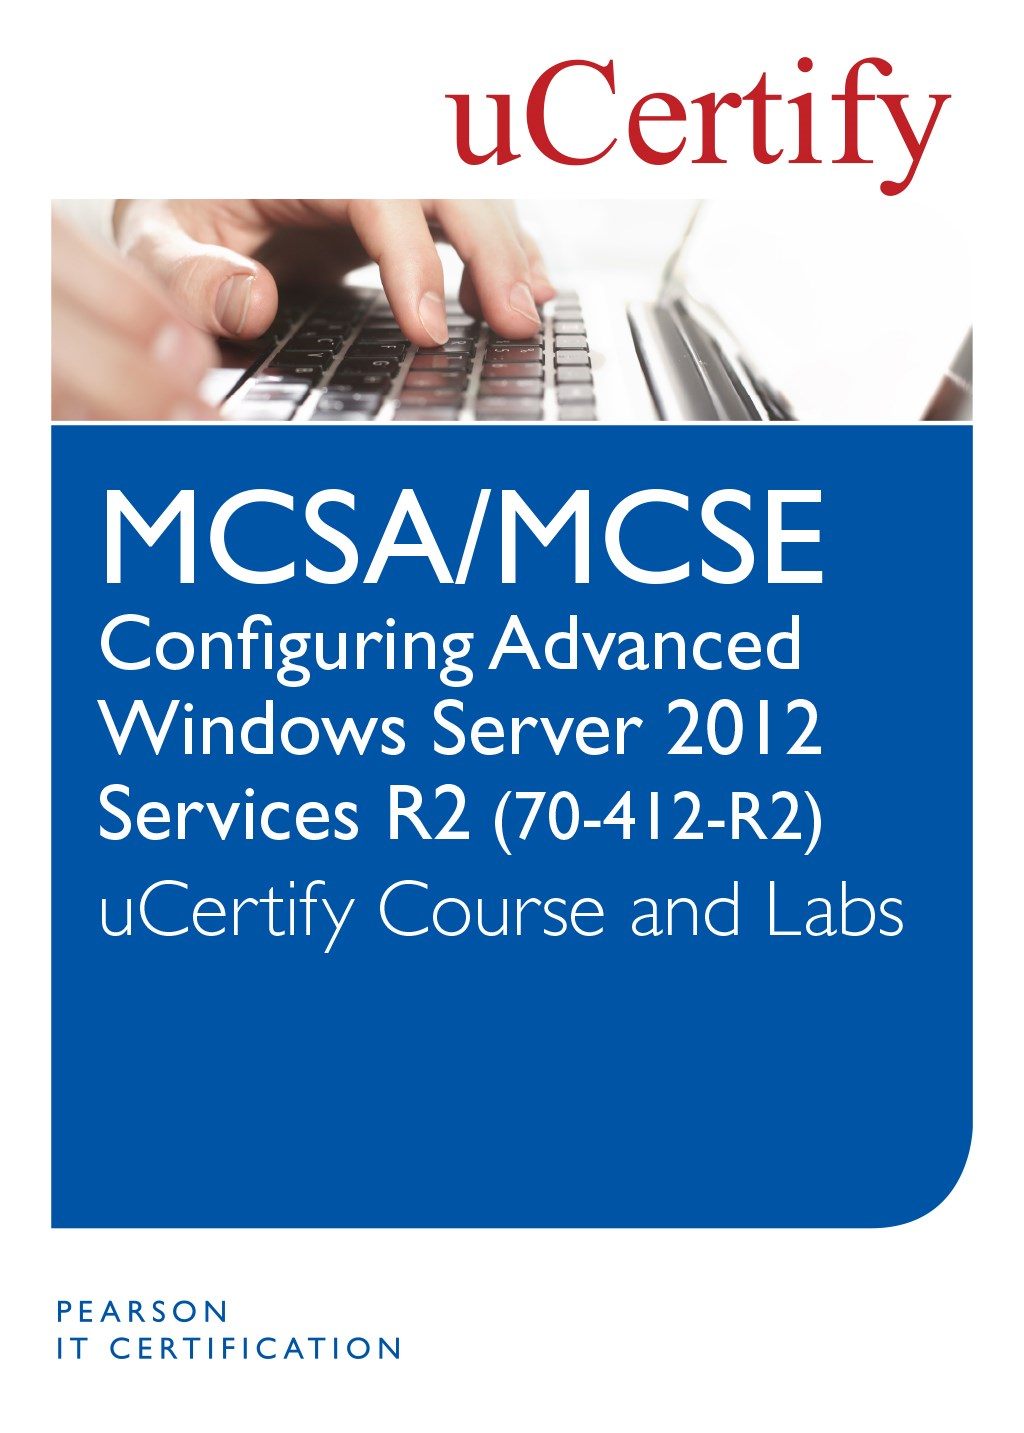 MCSA/MCSE Configuring Advanced Windows Server 2012 R2 Services (70-412-R2) uCertify Course and Lab